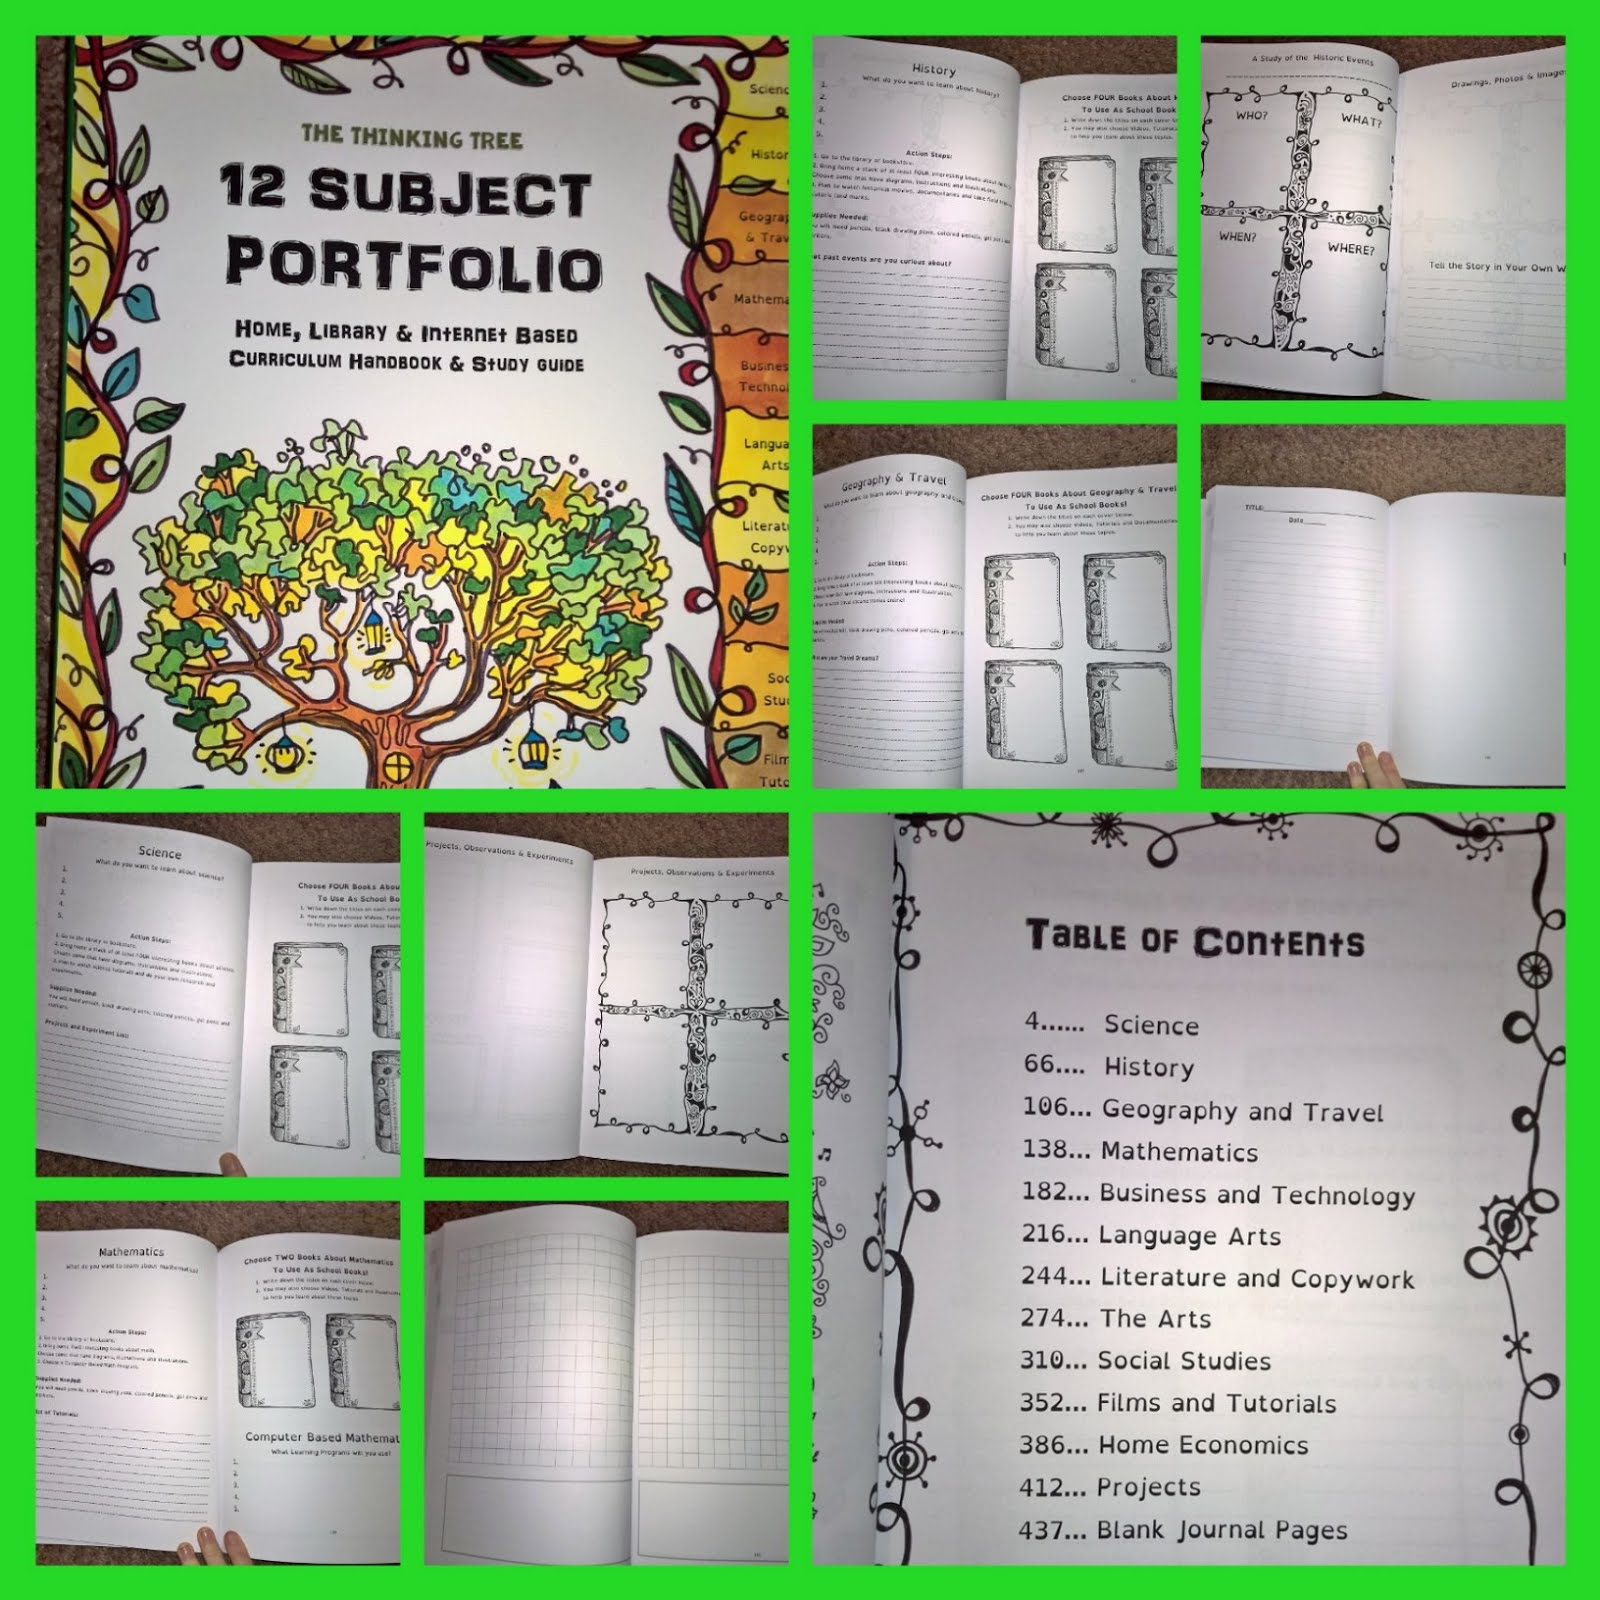 Its a good full journals and books from the thinking tree sample ages 3 to 7 fun schooling journal do it yourself homeschooling for beginners homeschool prep book for new readers and non readers solutioingenieria Gallery